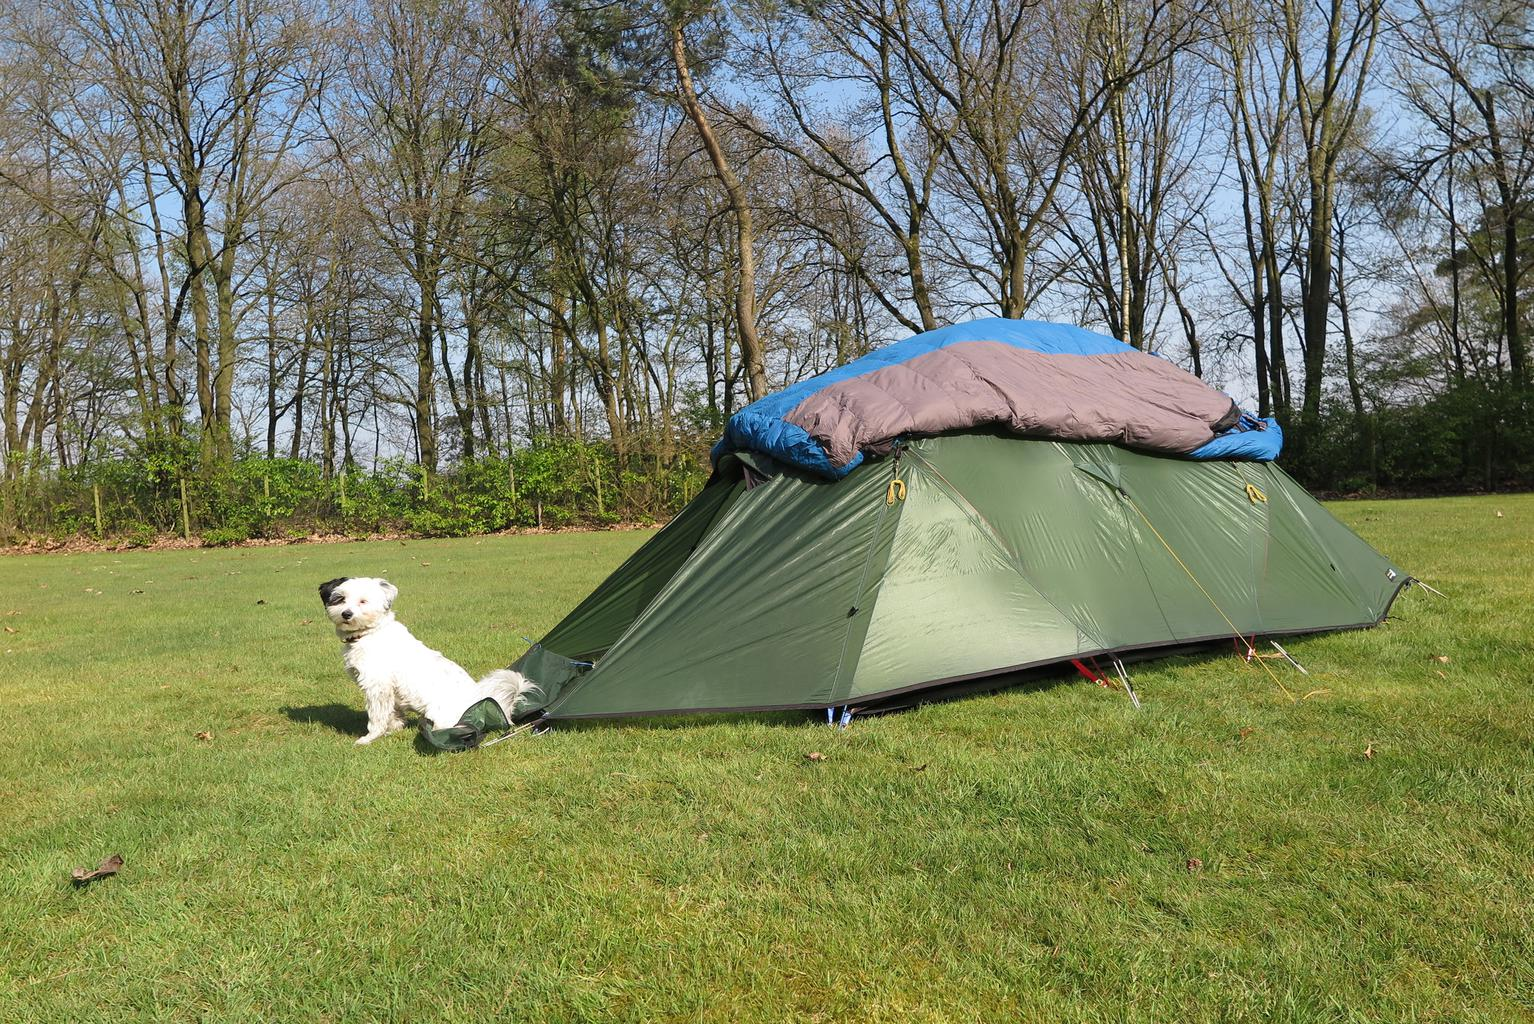 Rocky enjoying a camping trip. Tags: camping dog tent